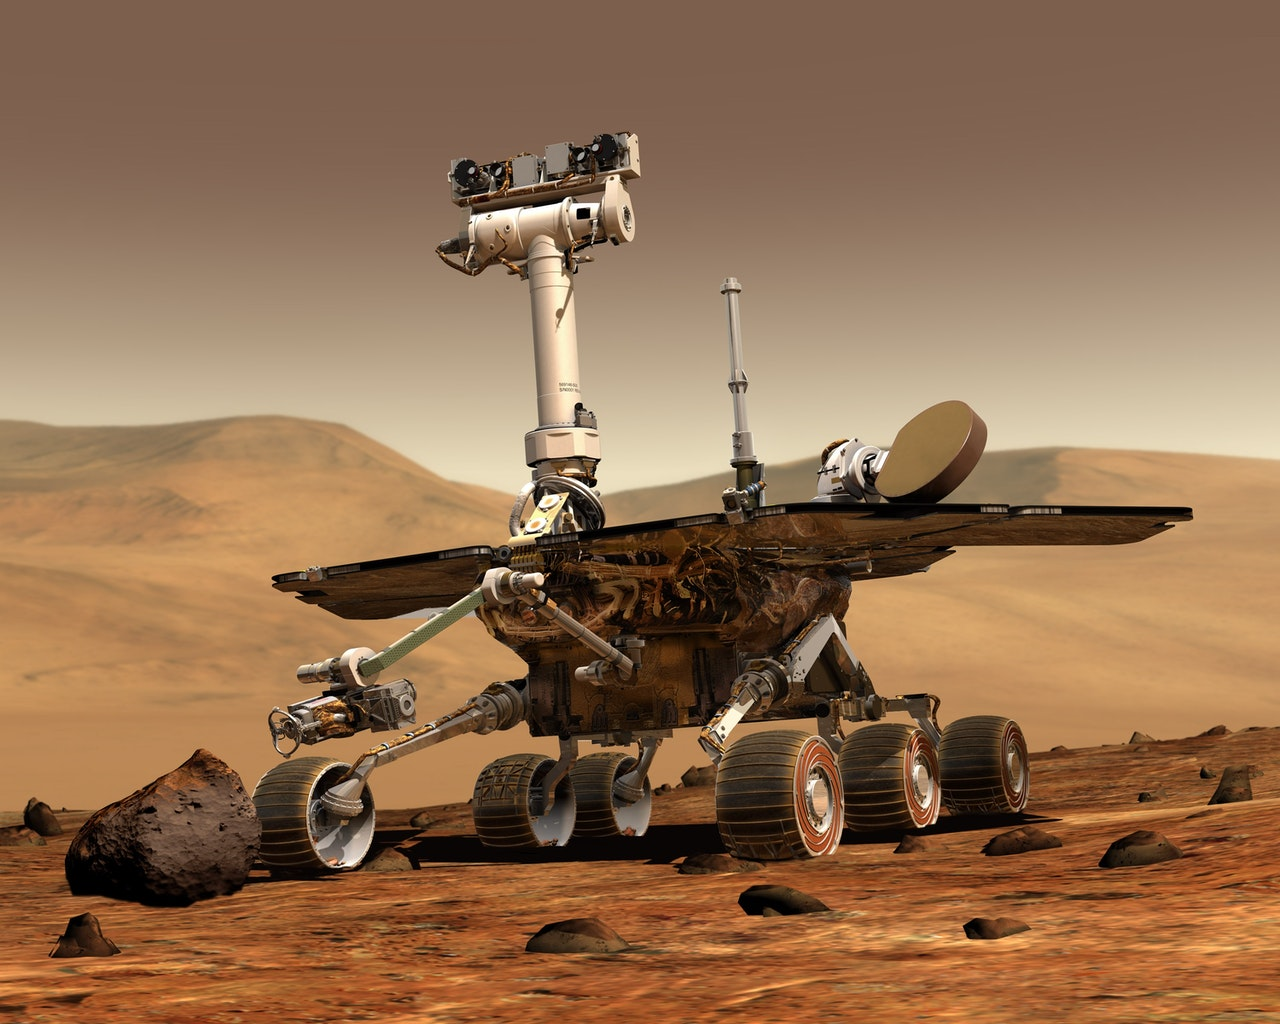 Mars 2020 Perseverance Mission Loaded Up with More Cameras Than Any Other Space Mission Ever